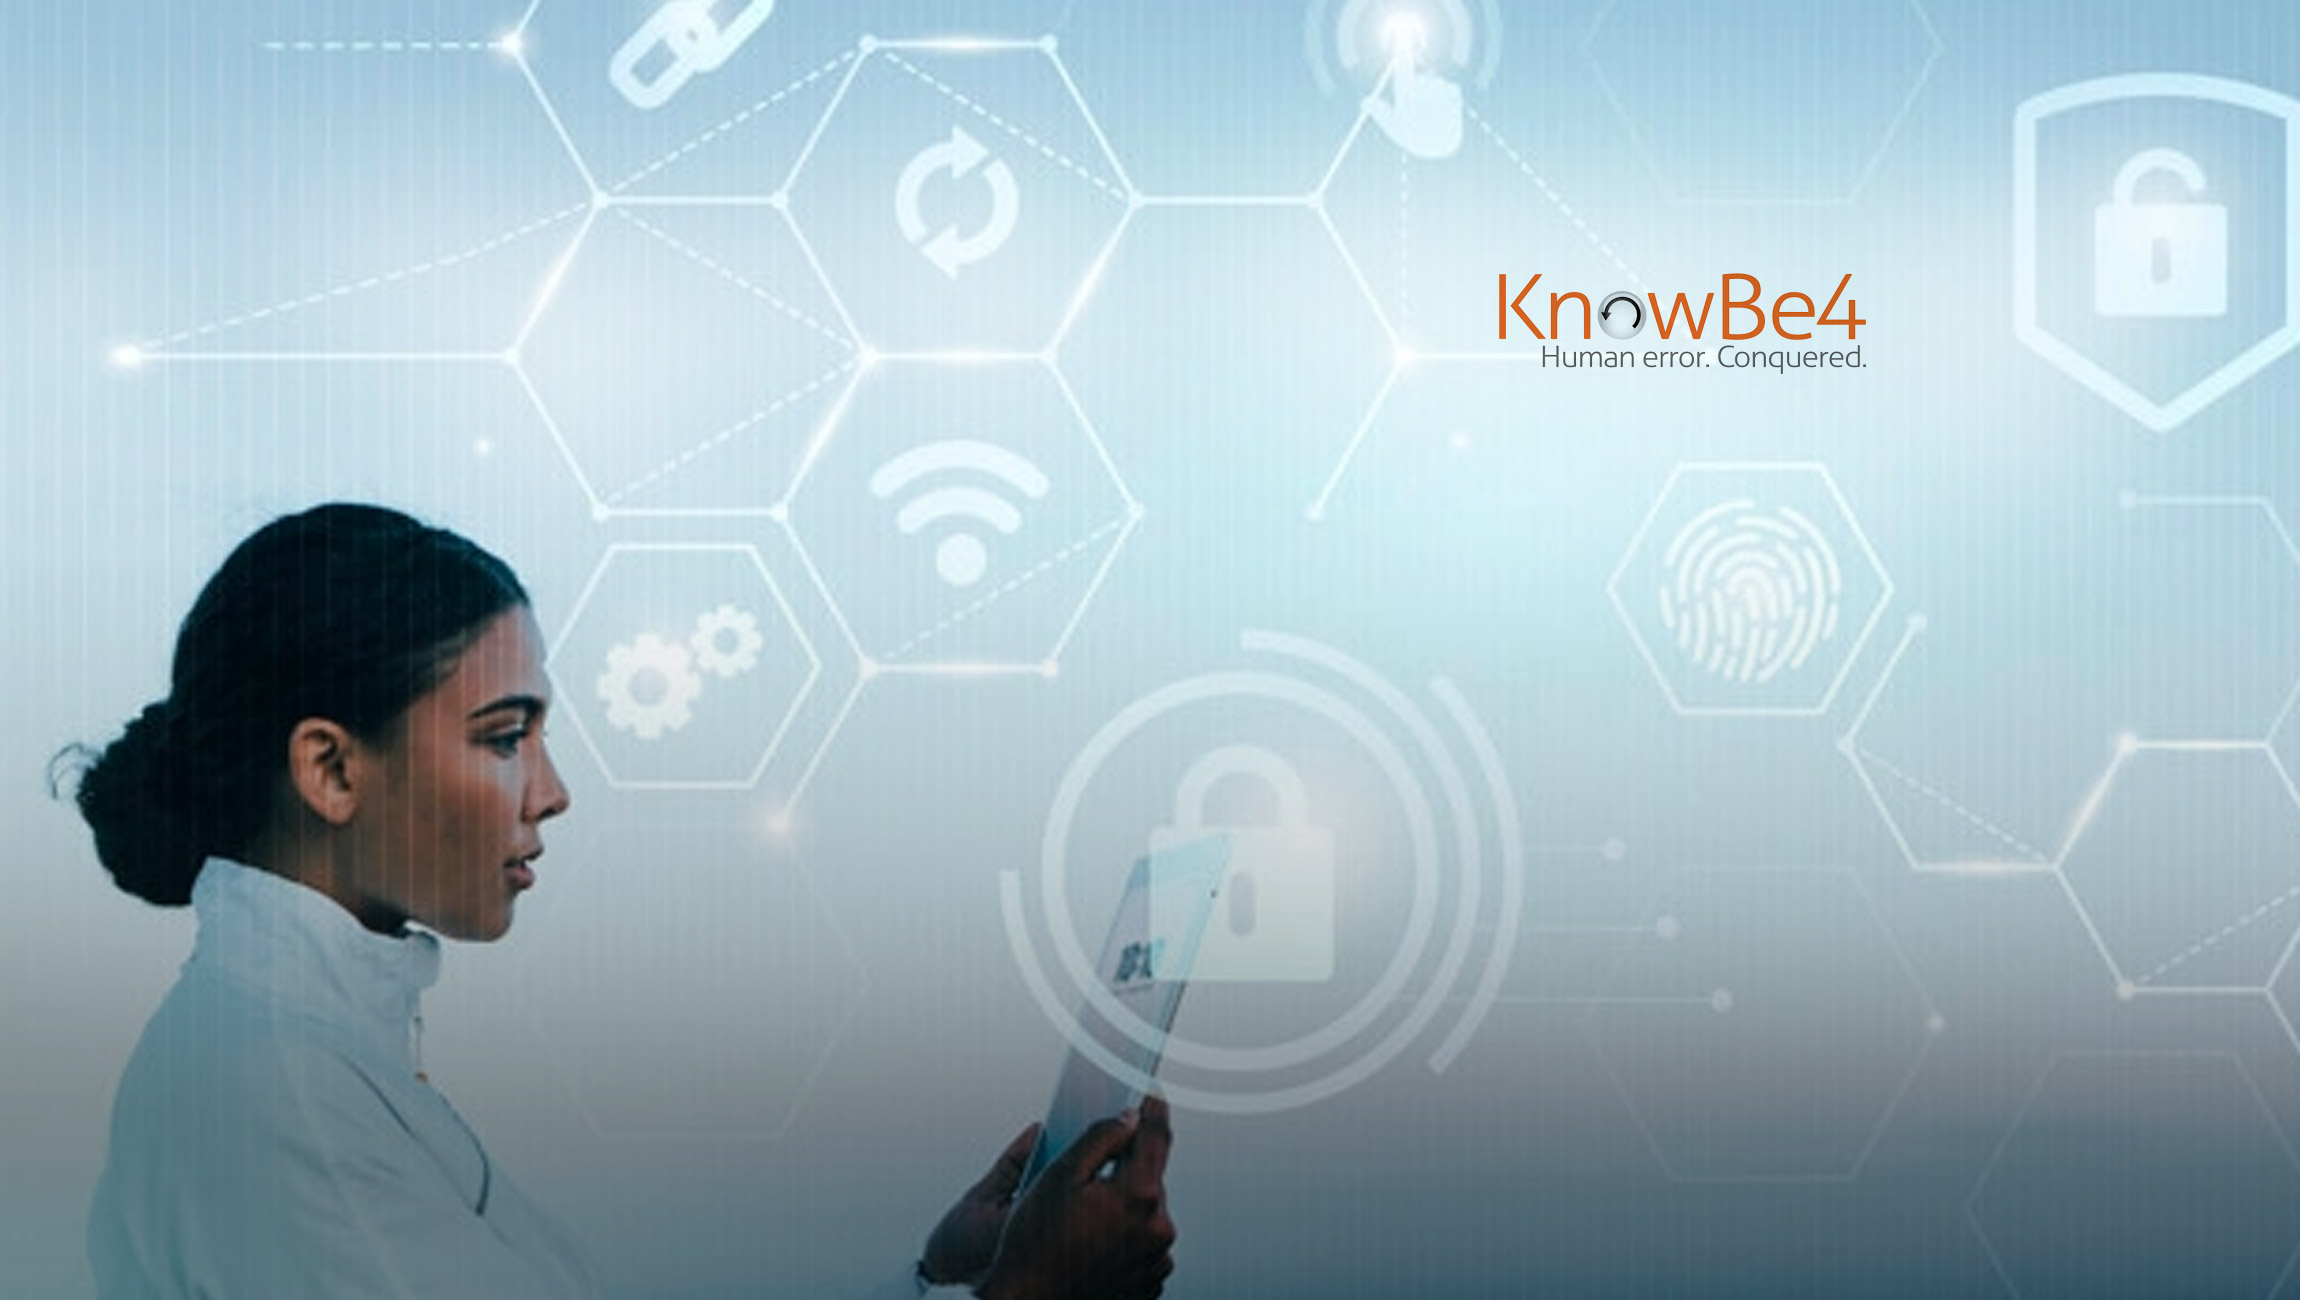 KnowBe4 Makes Mogul's Top 100 Workplaces With the Best D&I Initiatives in 2021